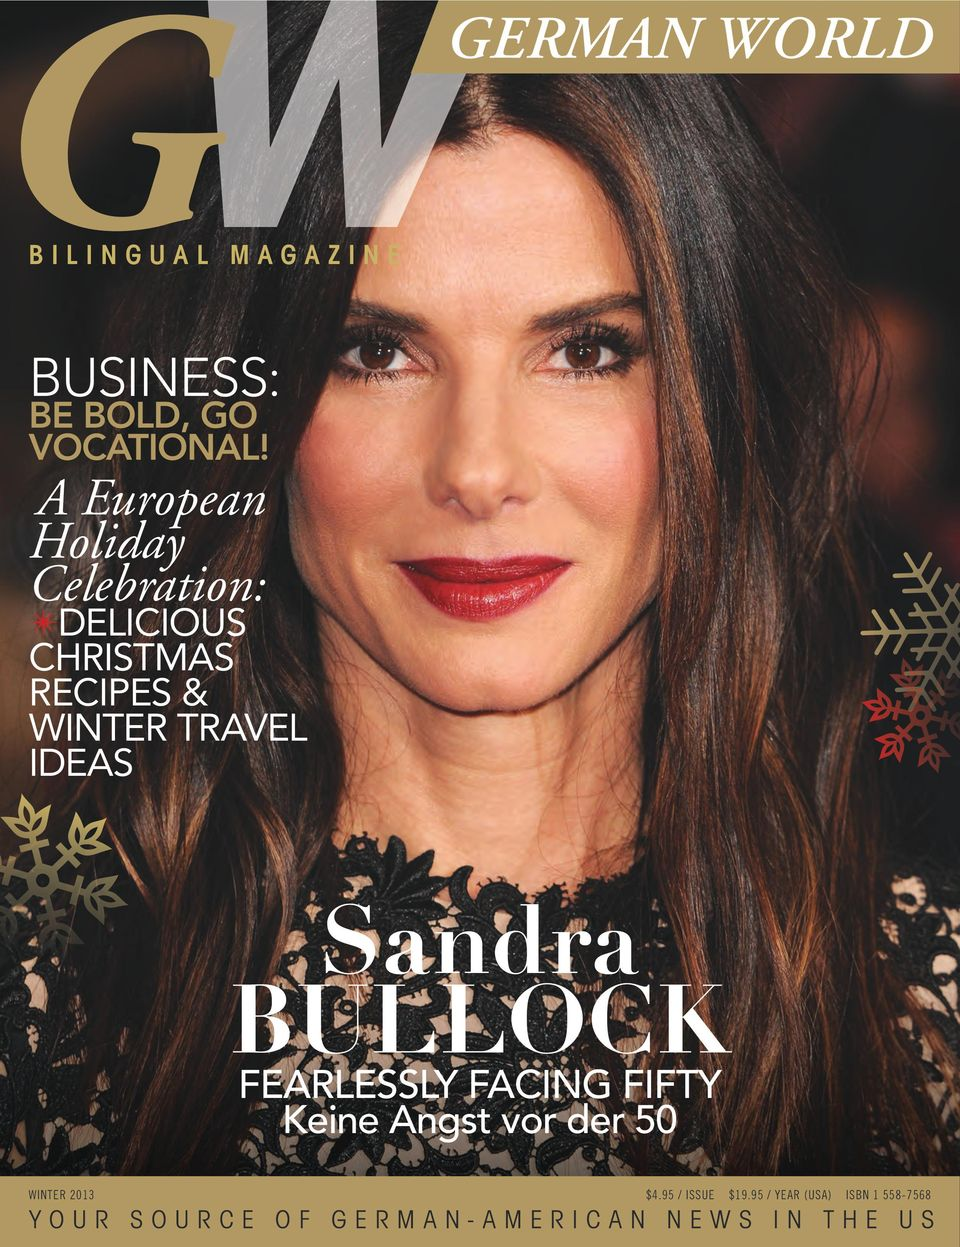 IDEAS Sandra BULLOCK FEARLESSLY FACING FIFTY Keine Angst vor der 50 WINTER 2013